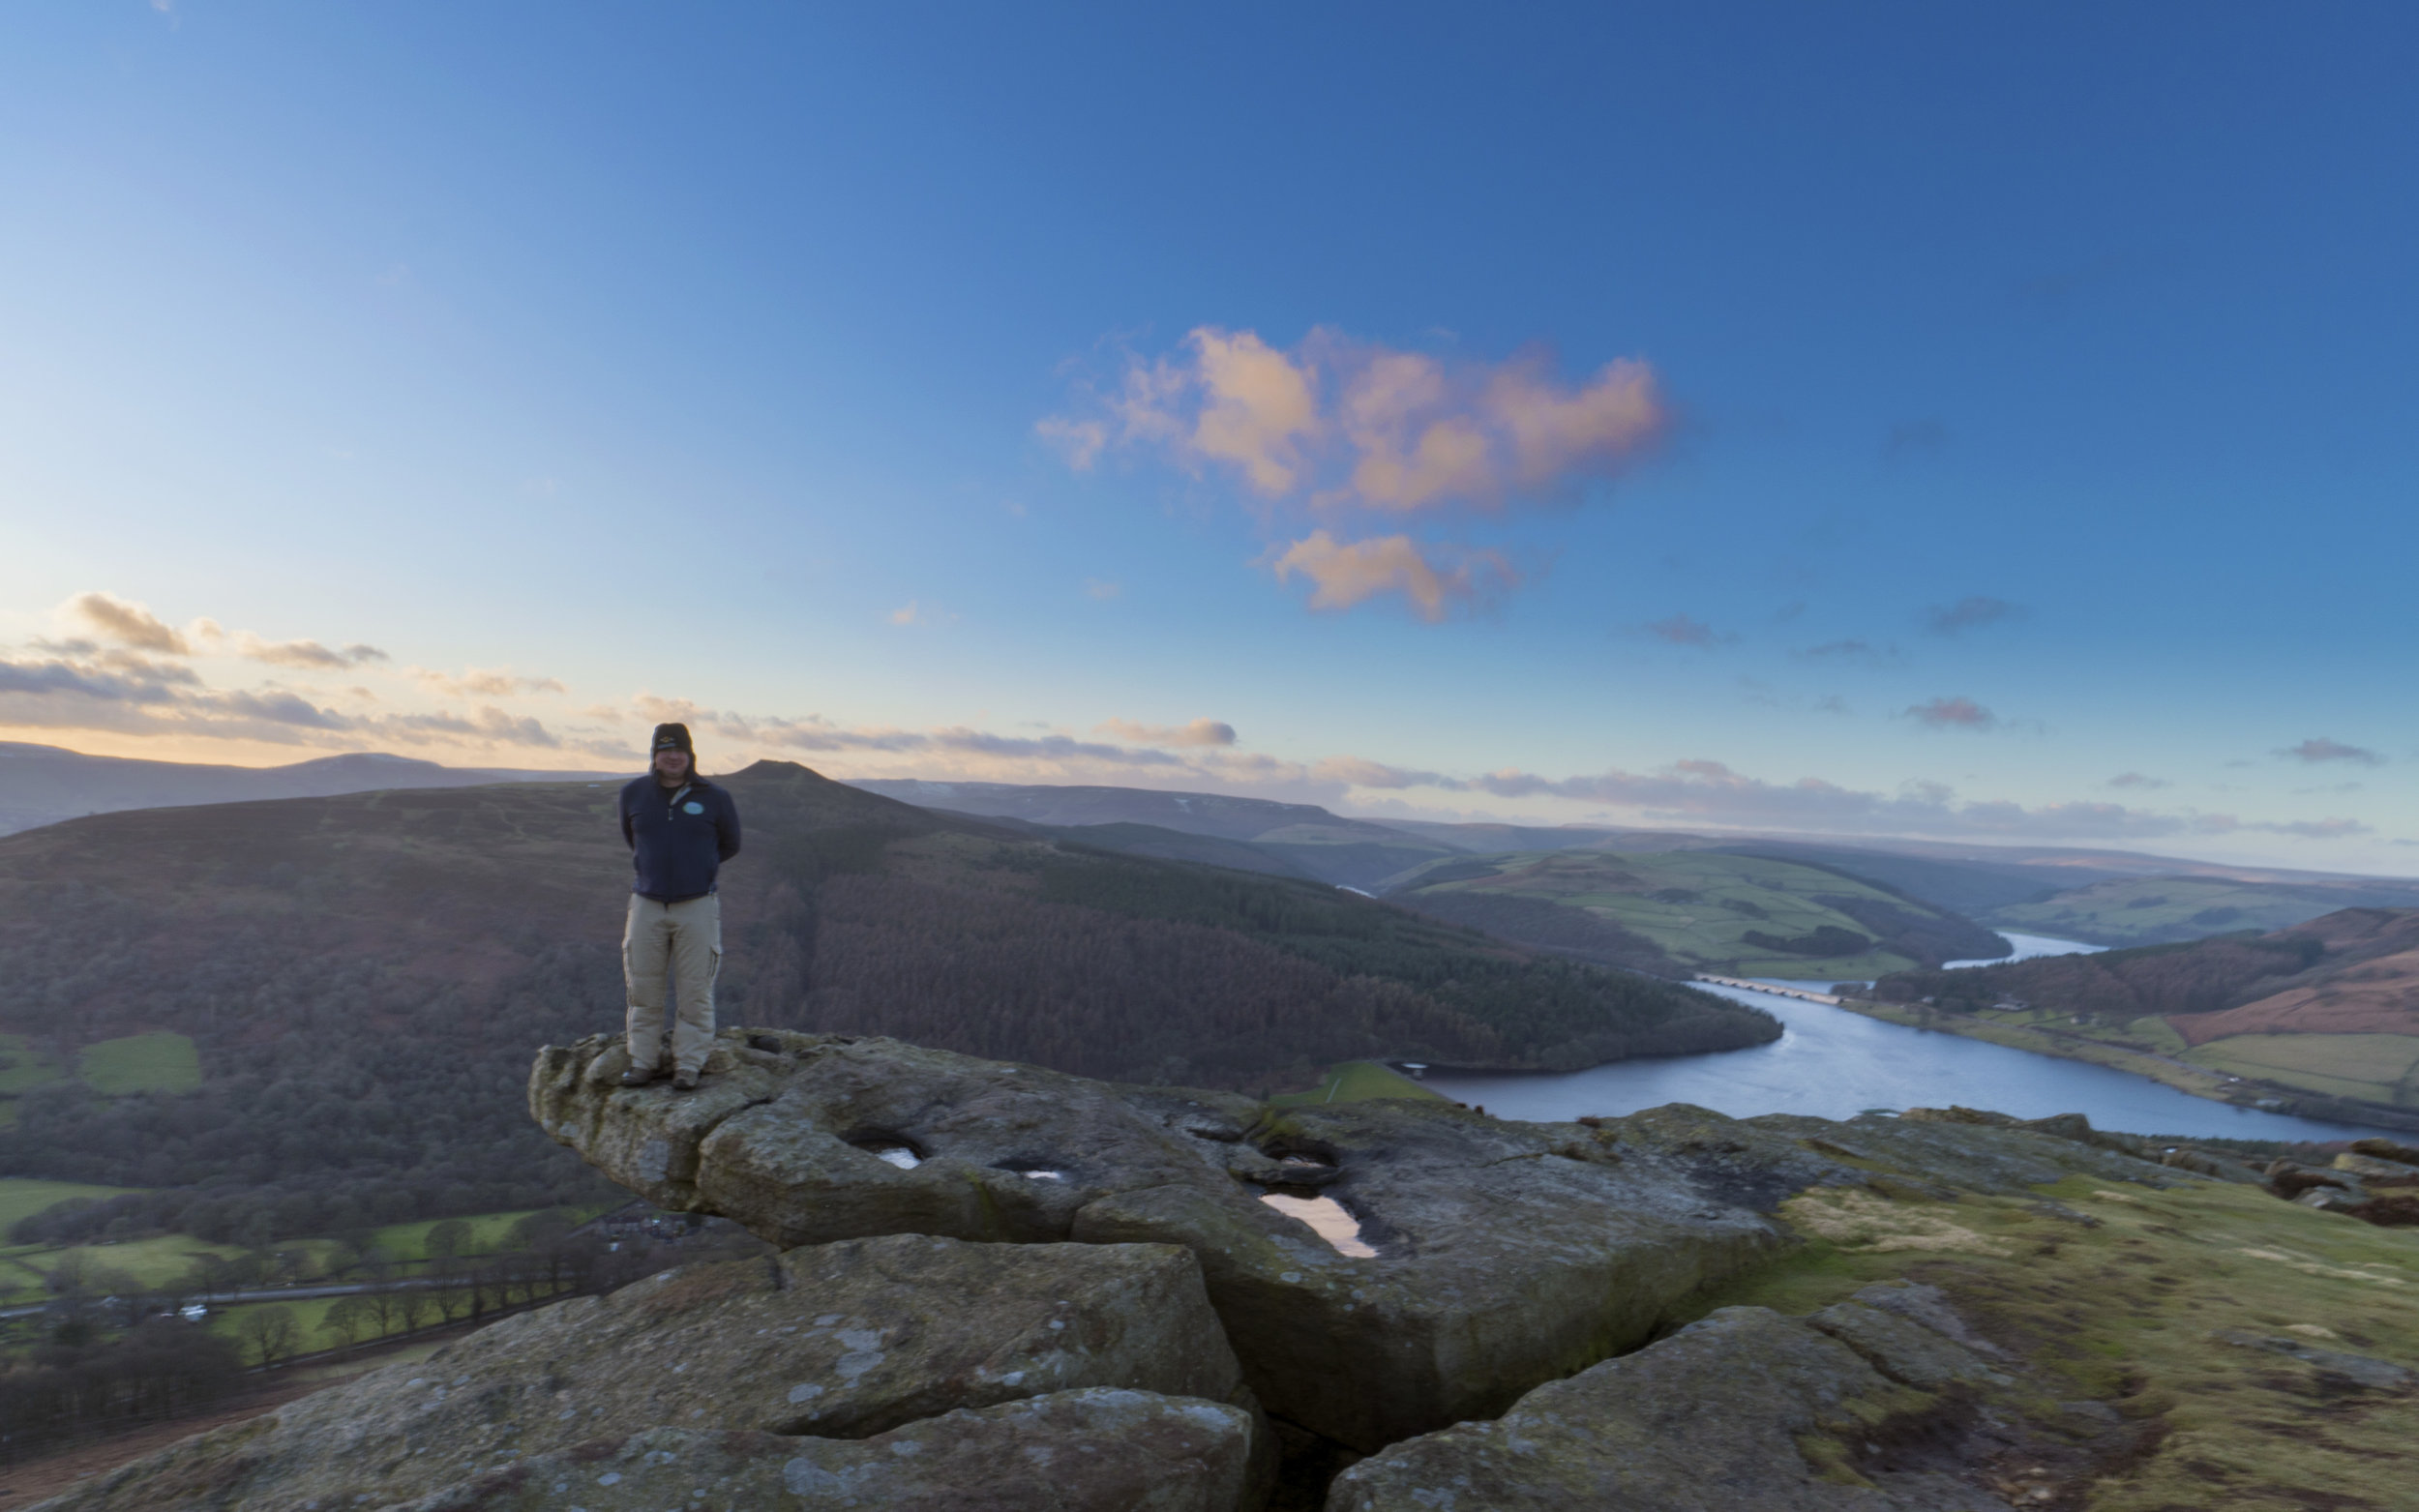 Paul at Bamford Edge, Peak District National Park, United Kingdom